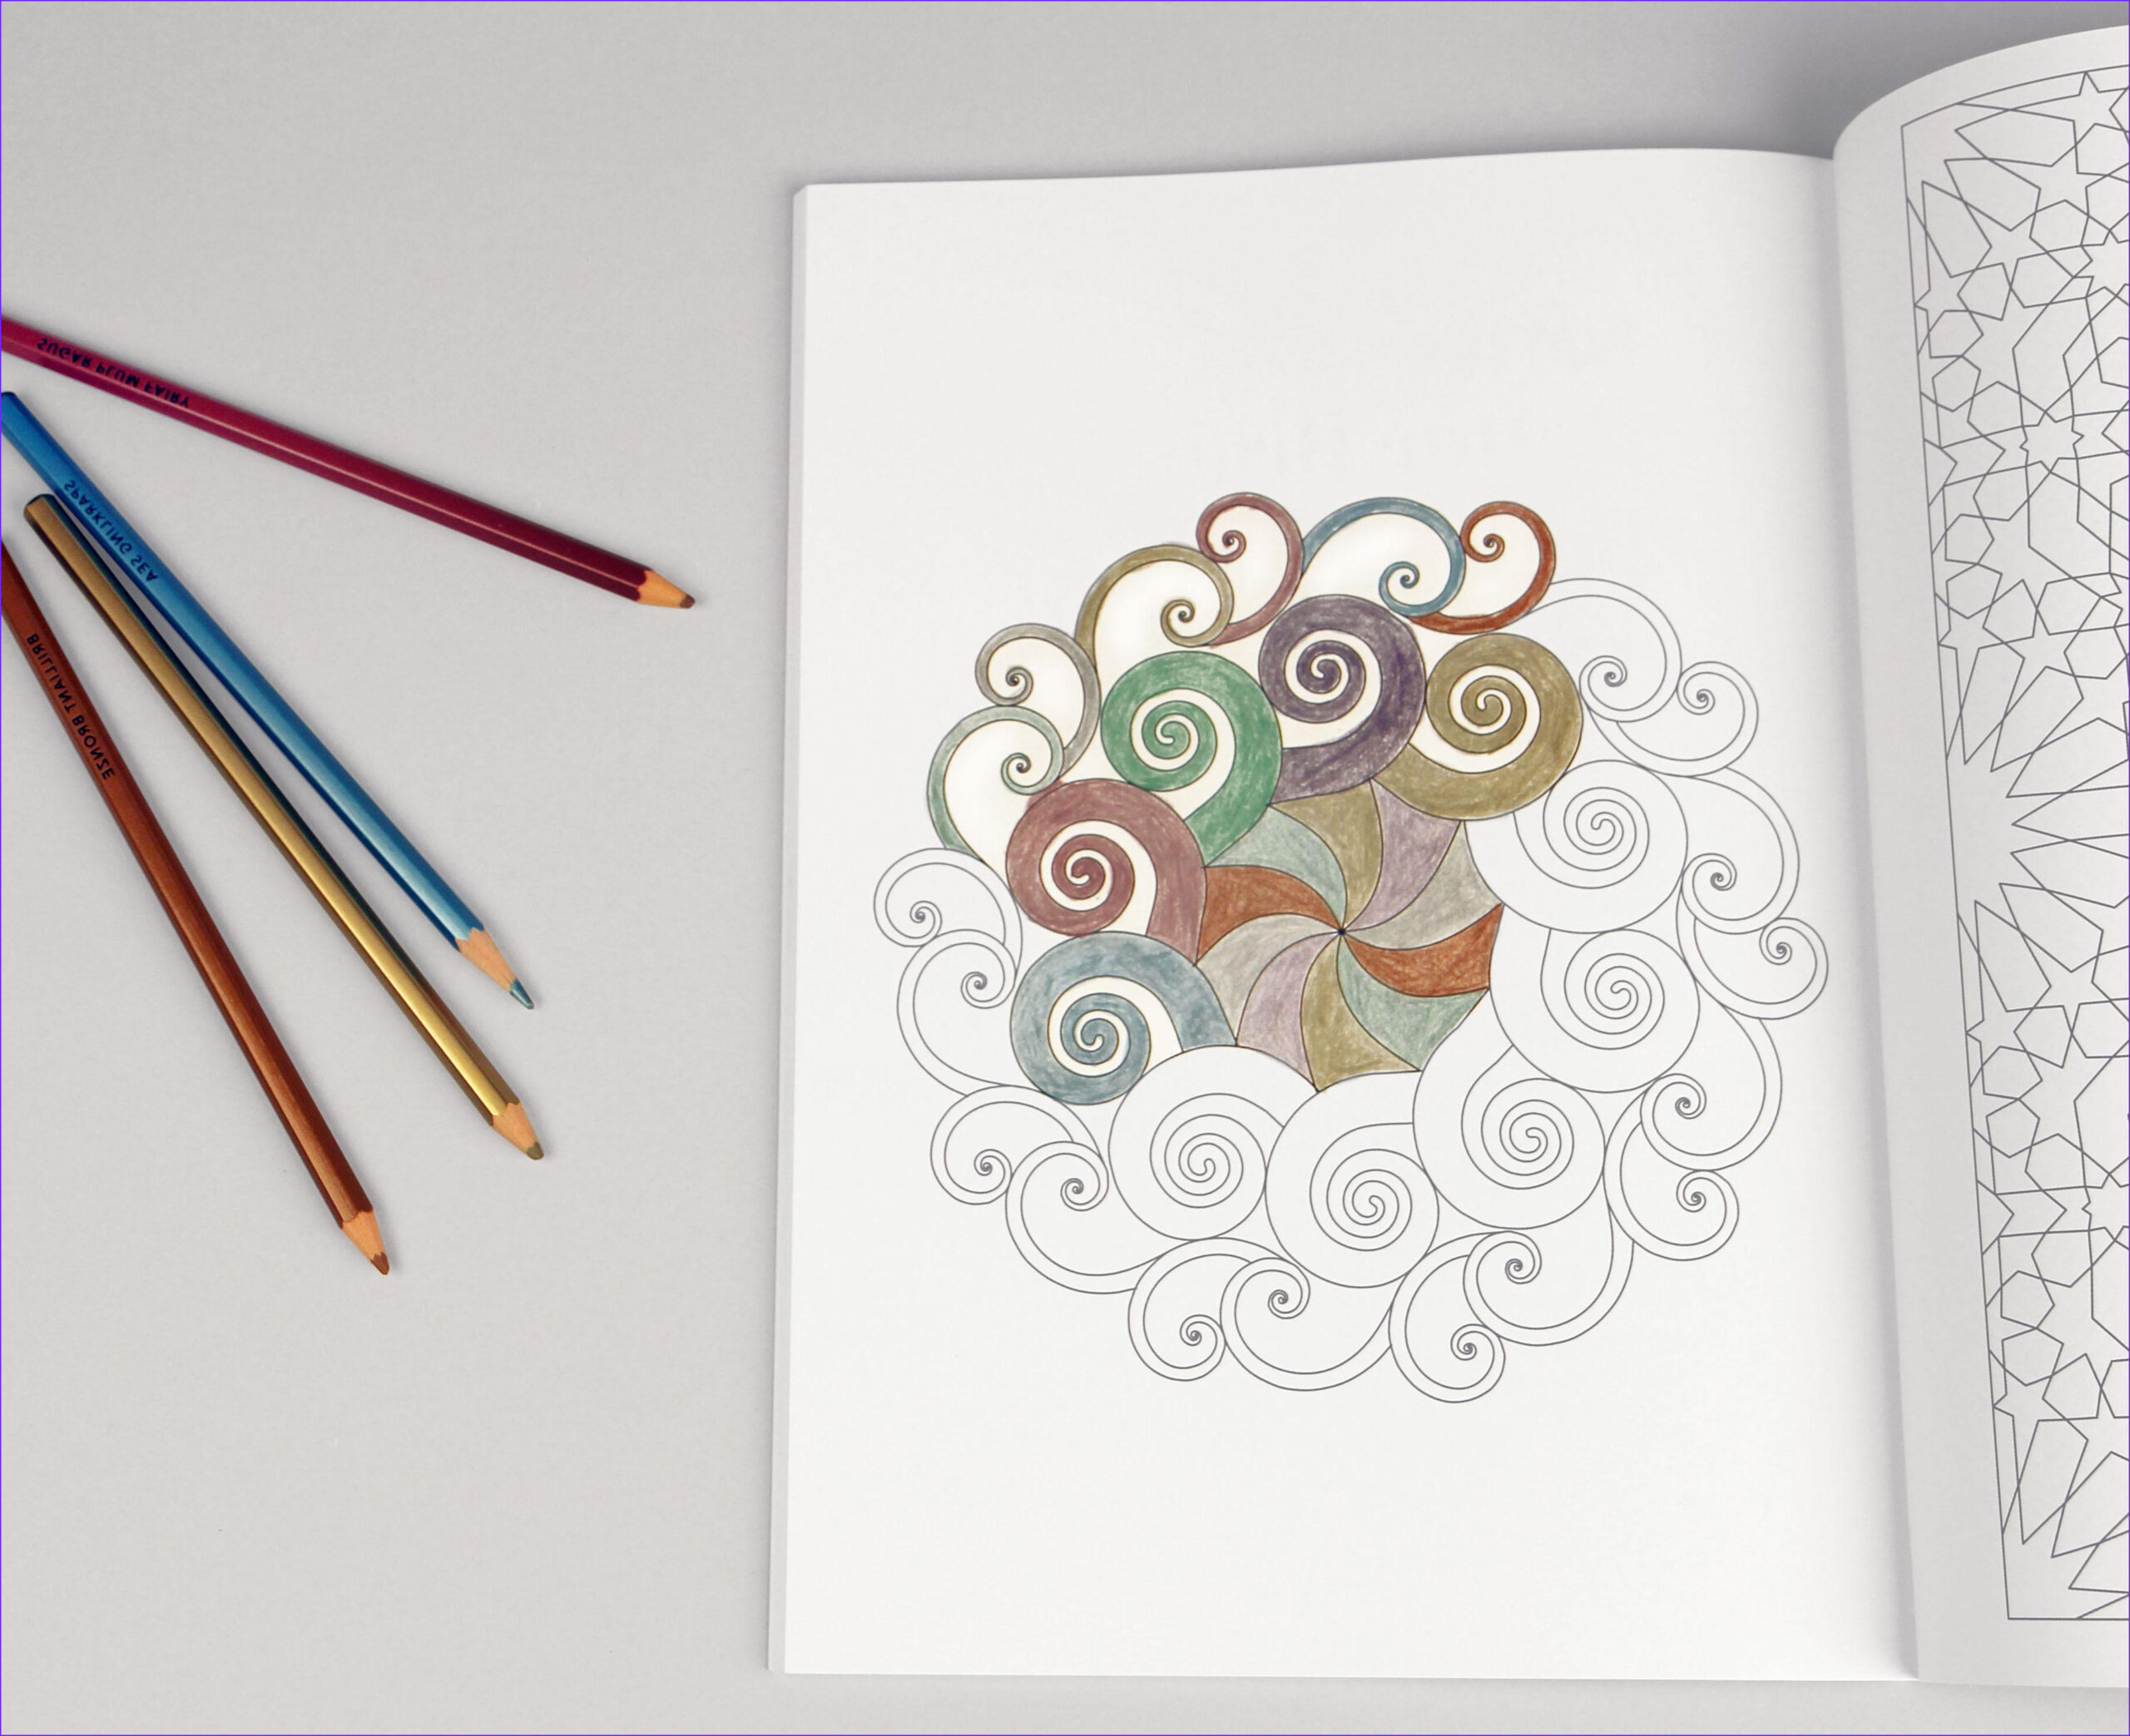 Coloring 4 Cool Collection Modern Meditation Coloring Book with Bright Ideas Metallic